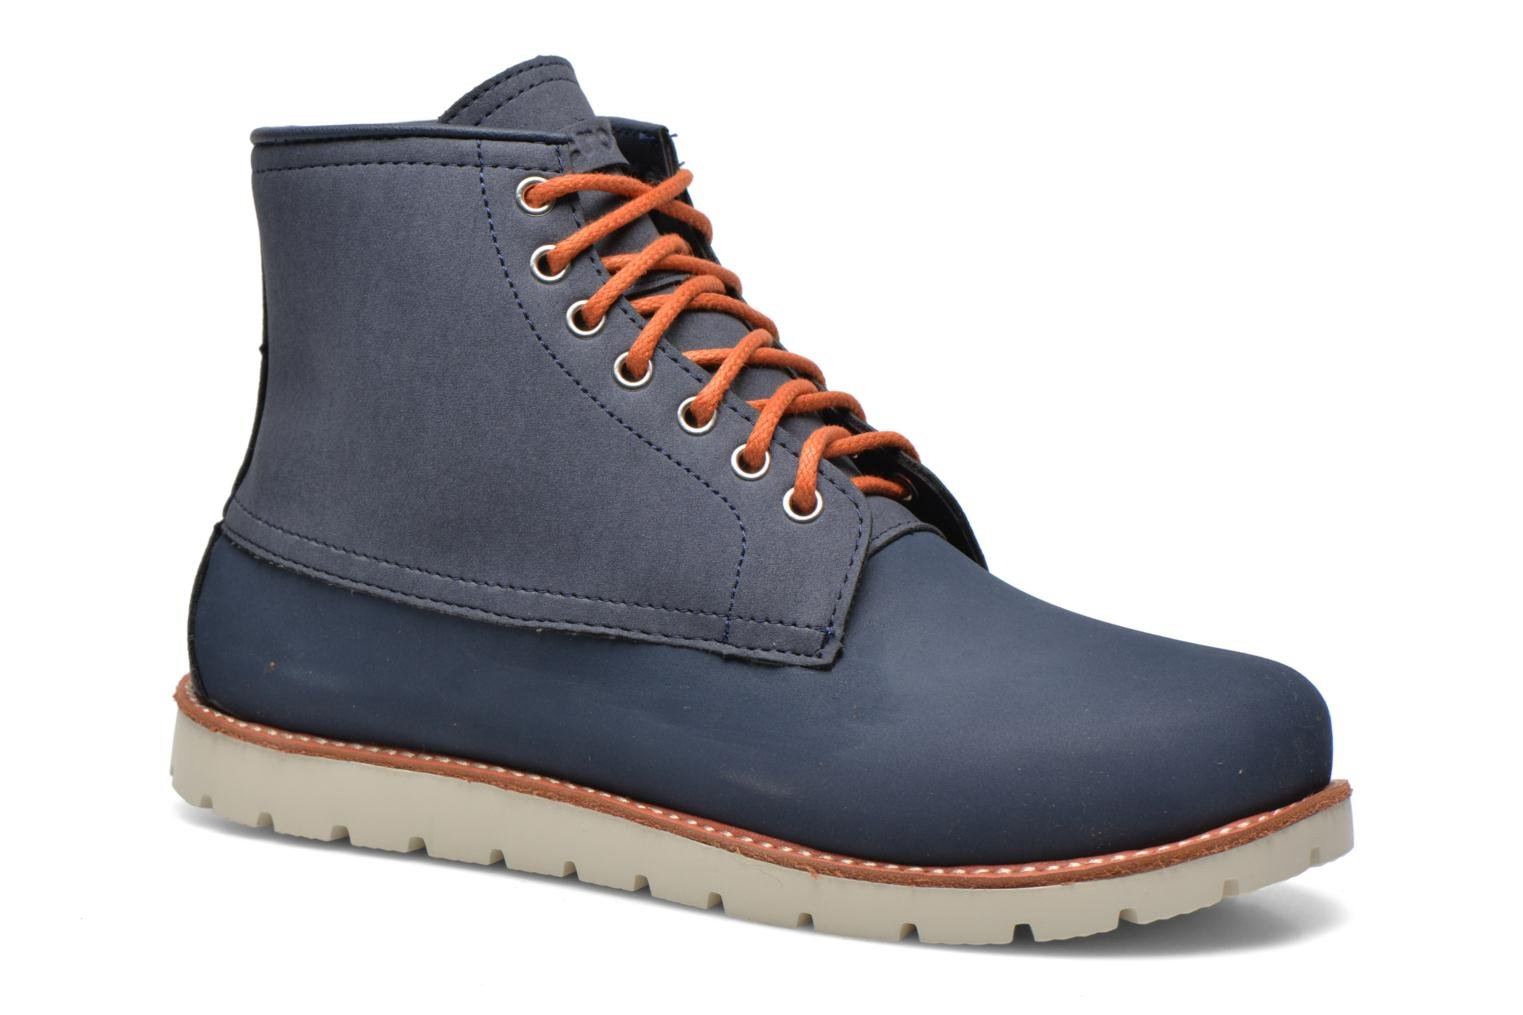 Crobbler Boot 2.0 Italy Navy/Stucco